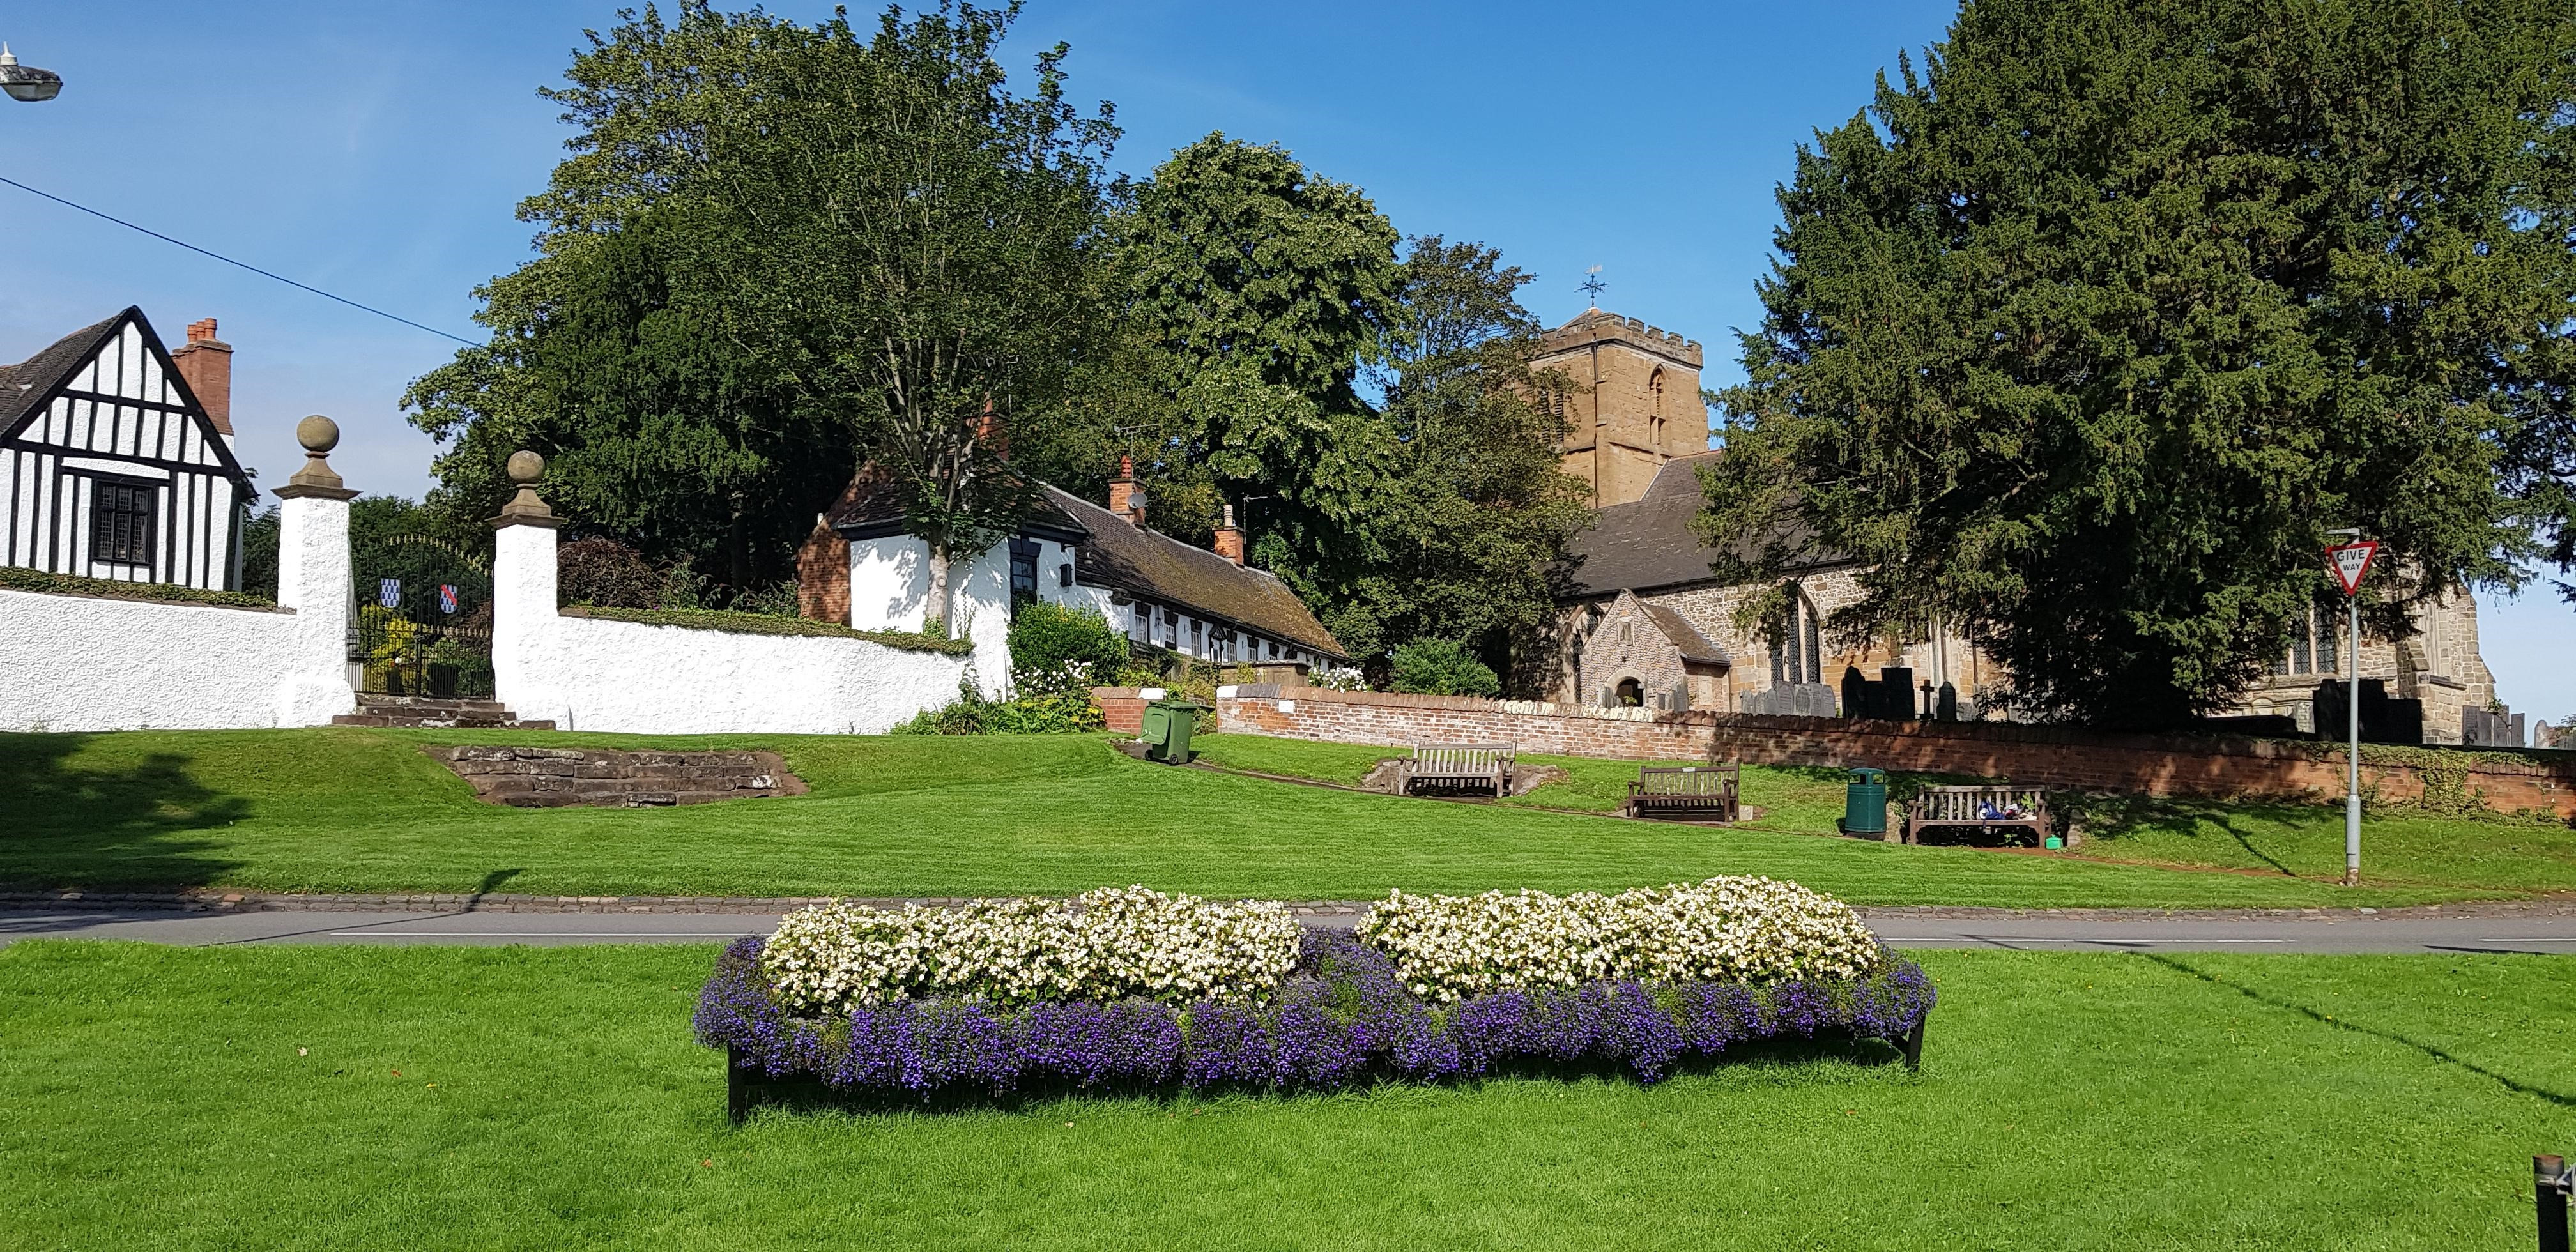 Mancetter Green with St Peter's Church and Almshouses